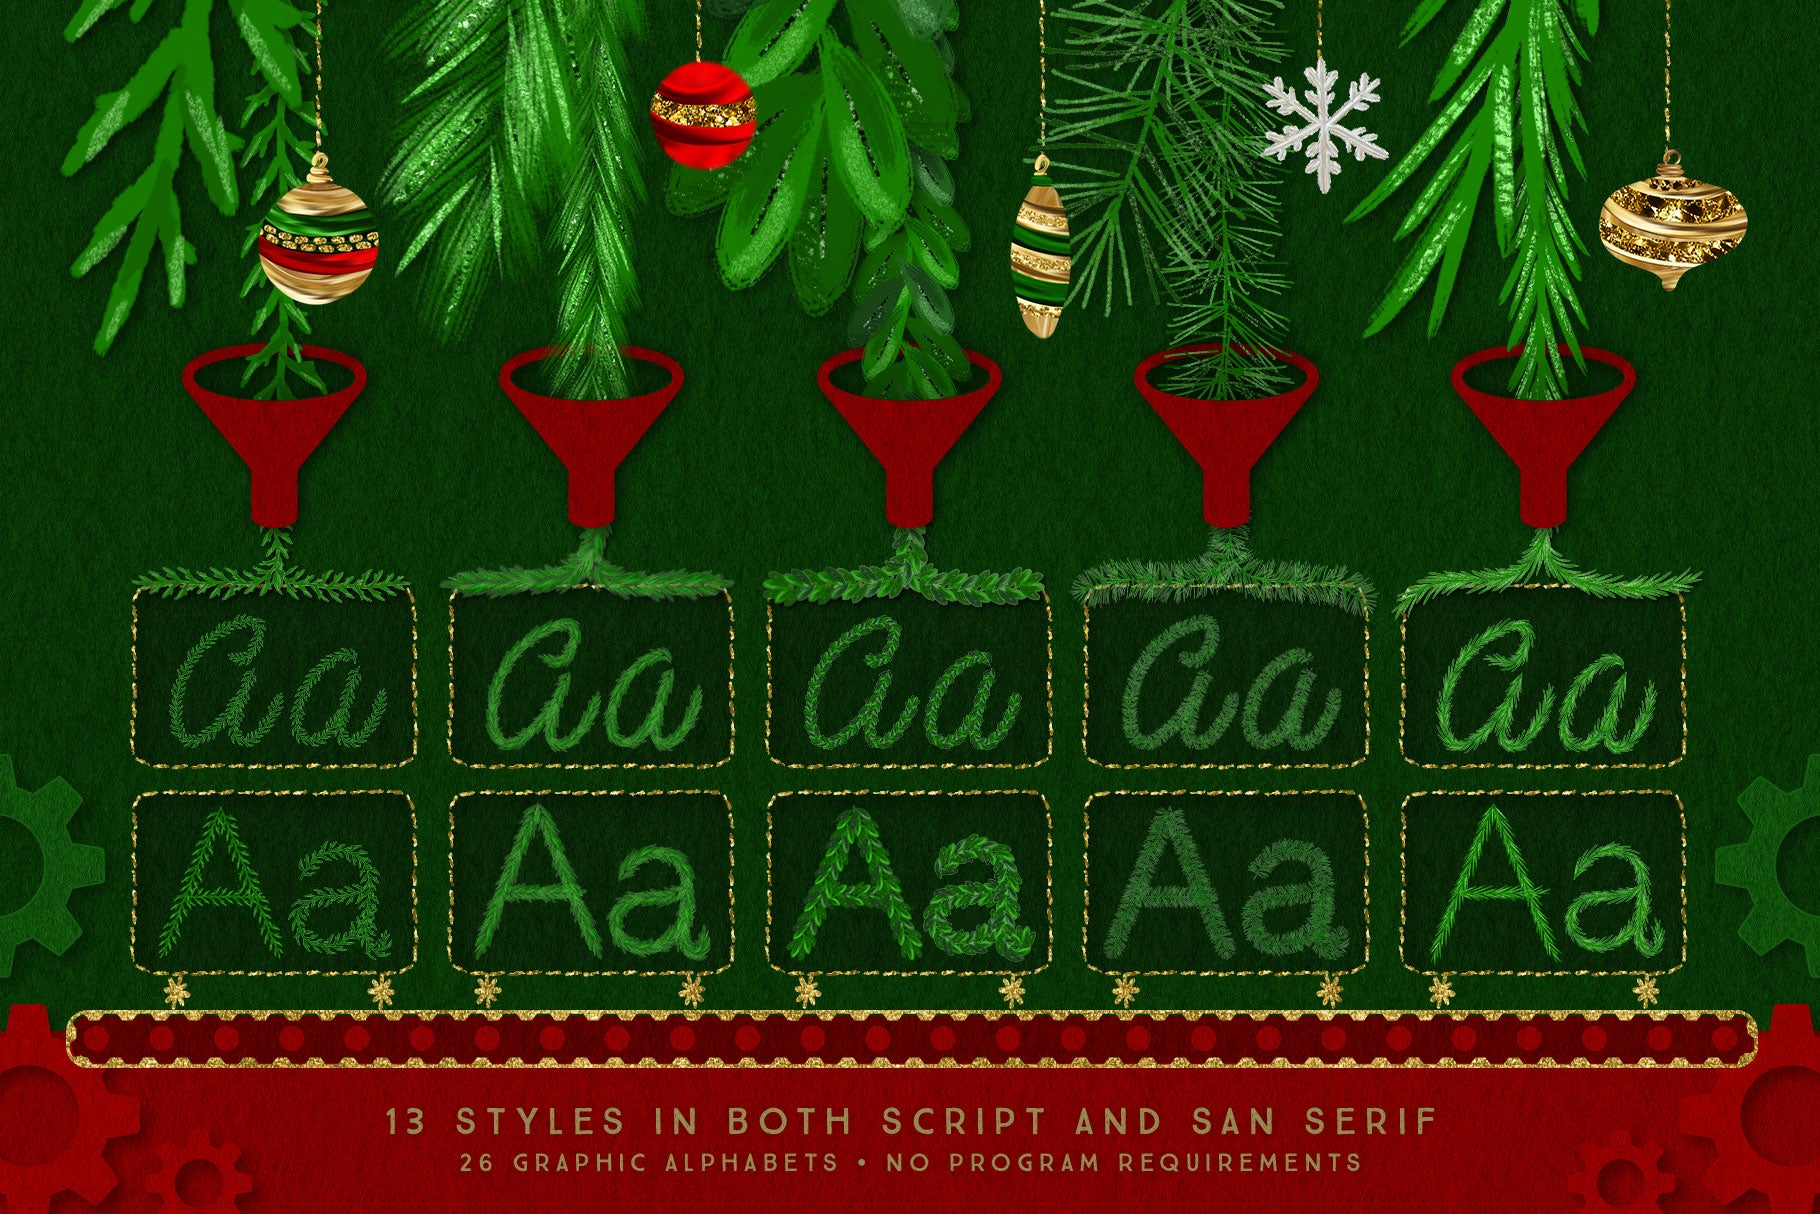 Luxe Christmas & Holiday Greenery Alphabets: letter styles